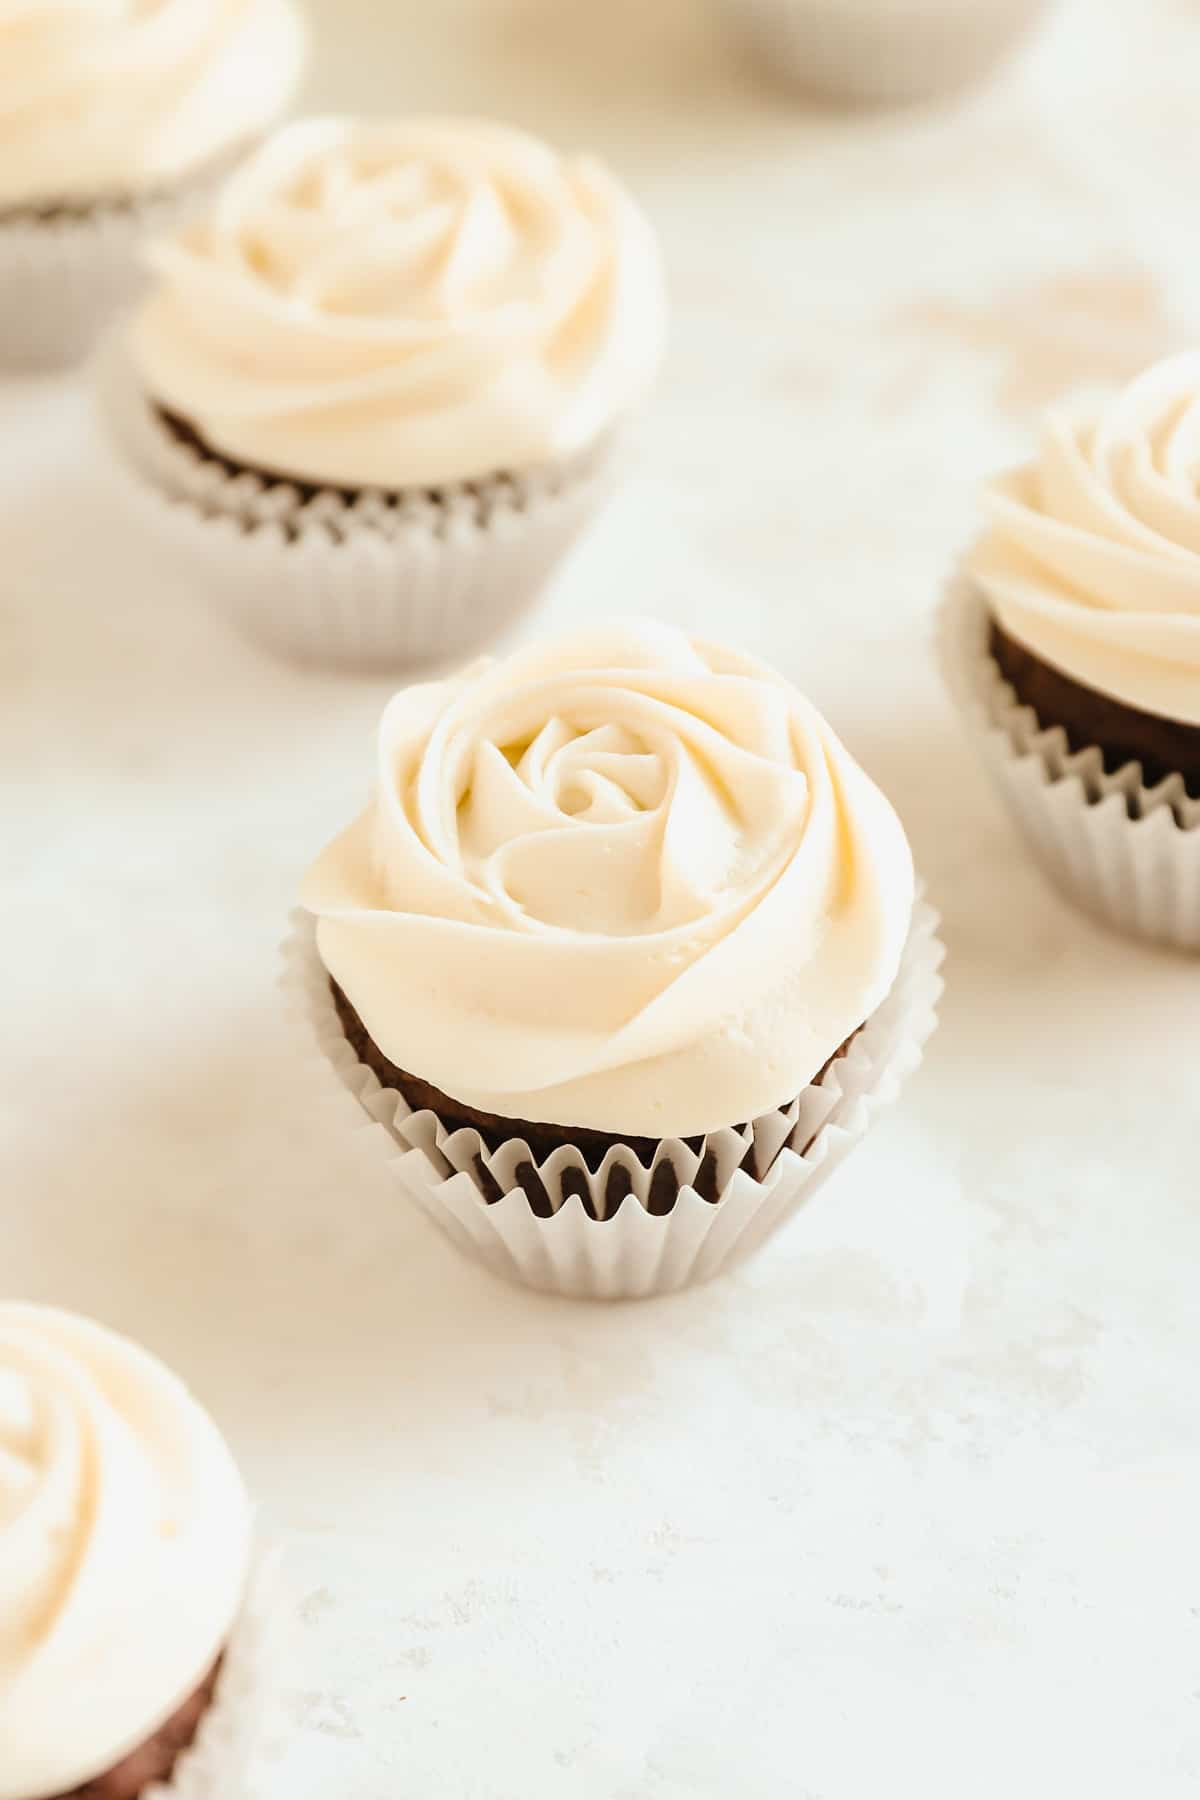 a close up of chocolate cupcakes with rosettes of cream cheese frosting on top.